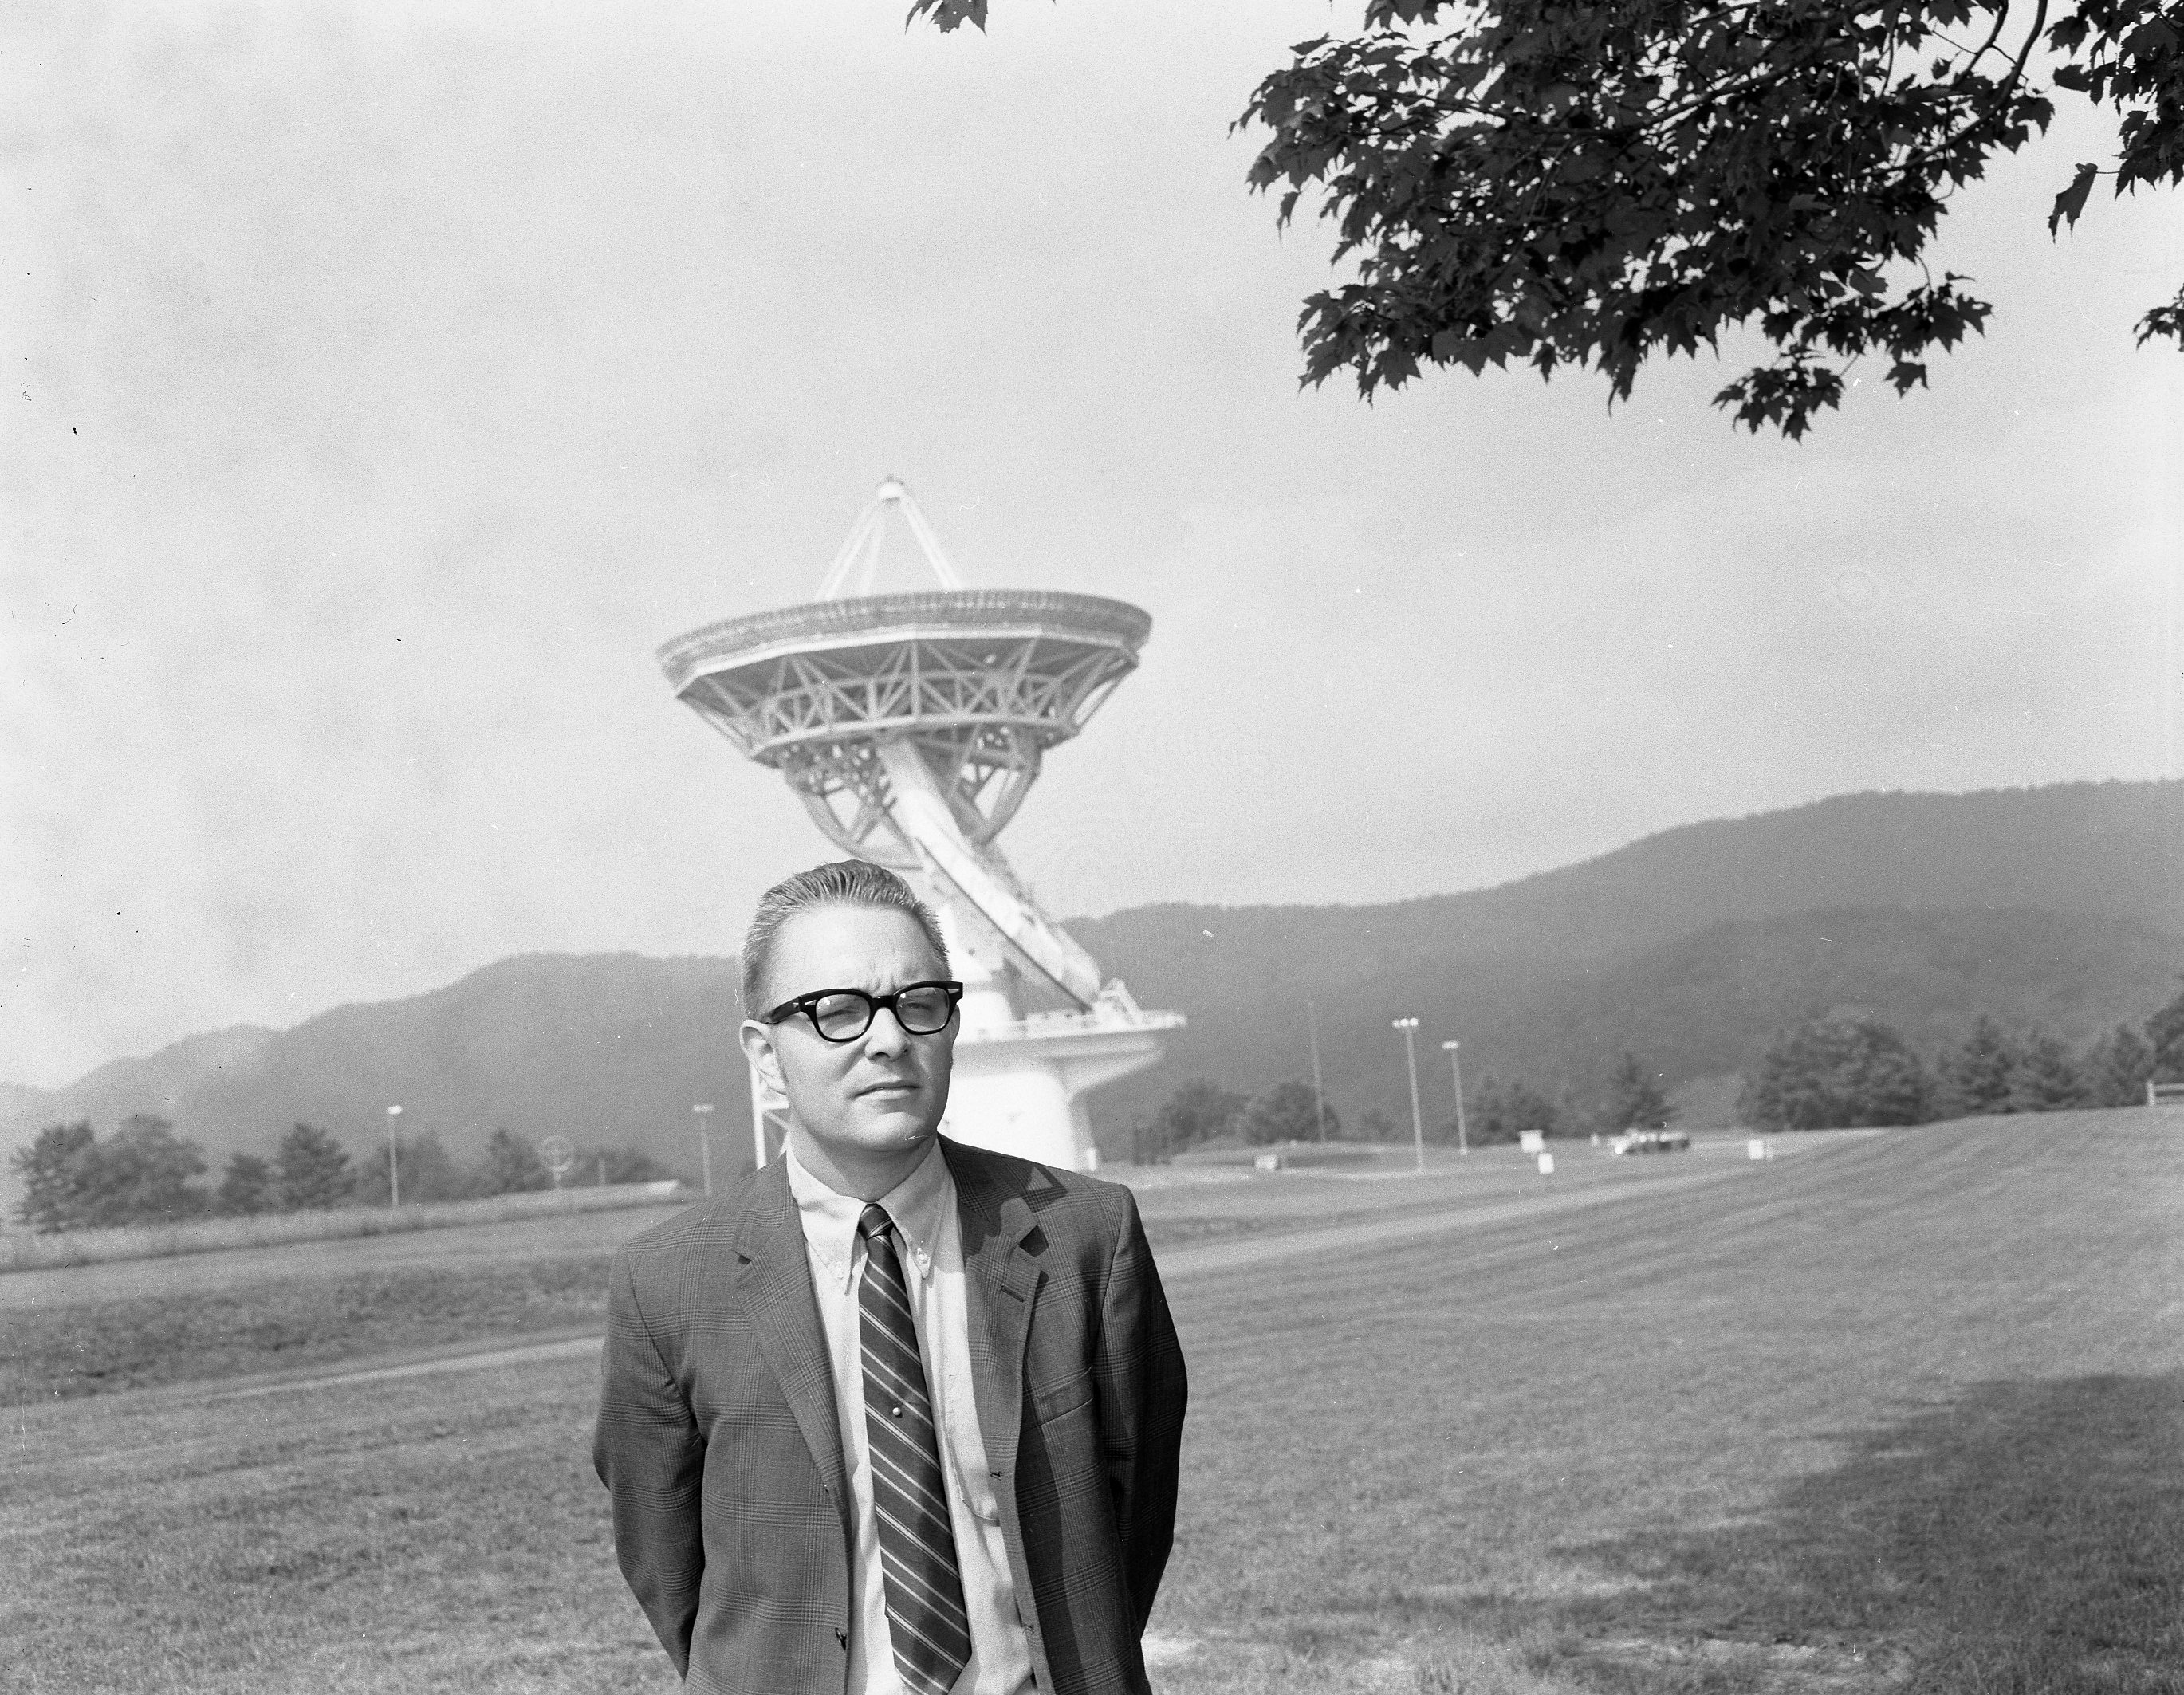 Lew Snyder in front of 140 Foot Telescope